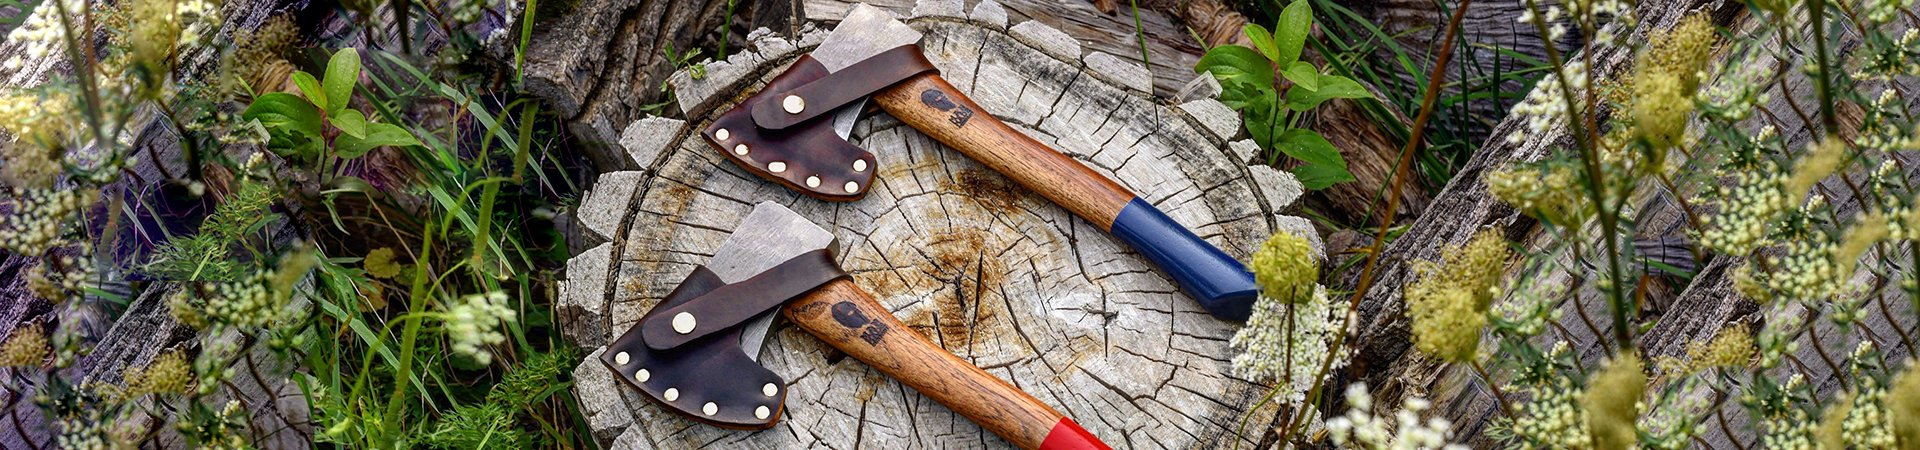 Best Backpacking Hatchets Reviewed in Detail